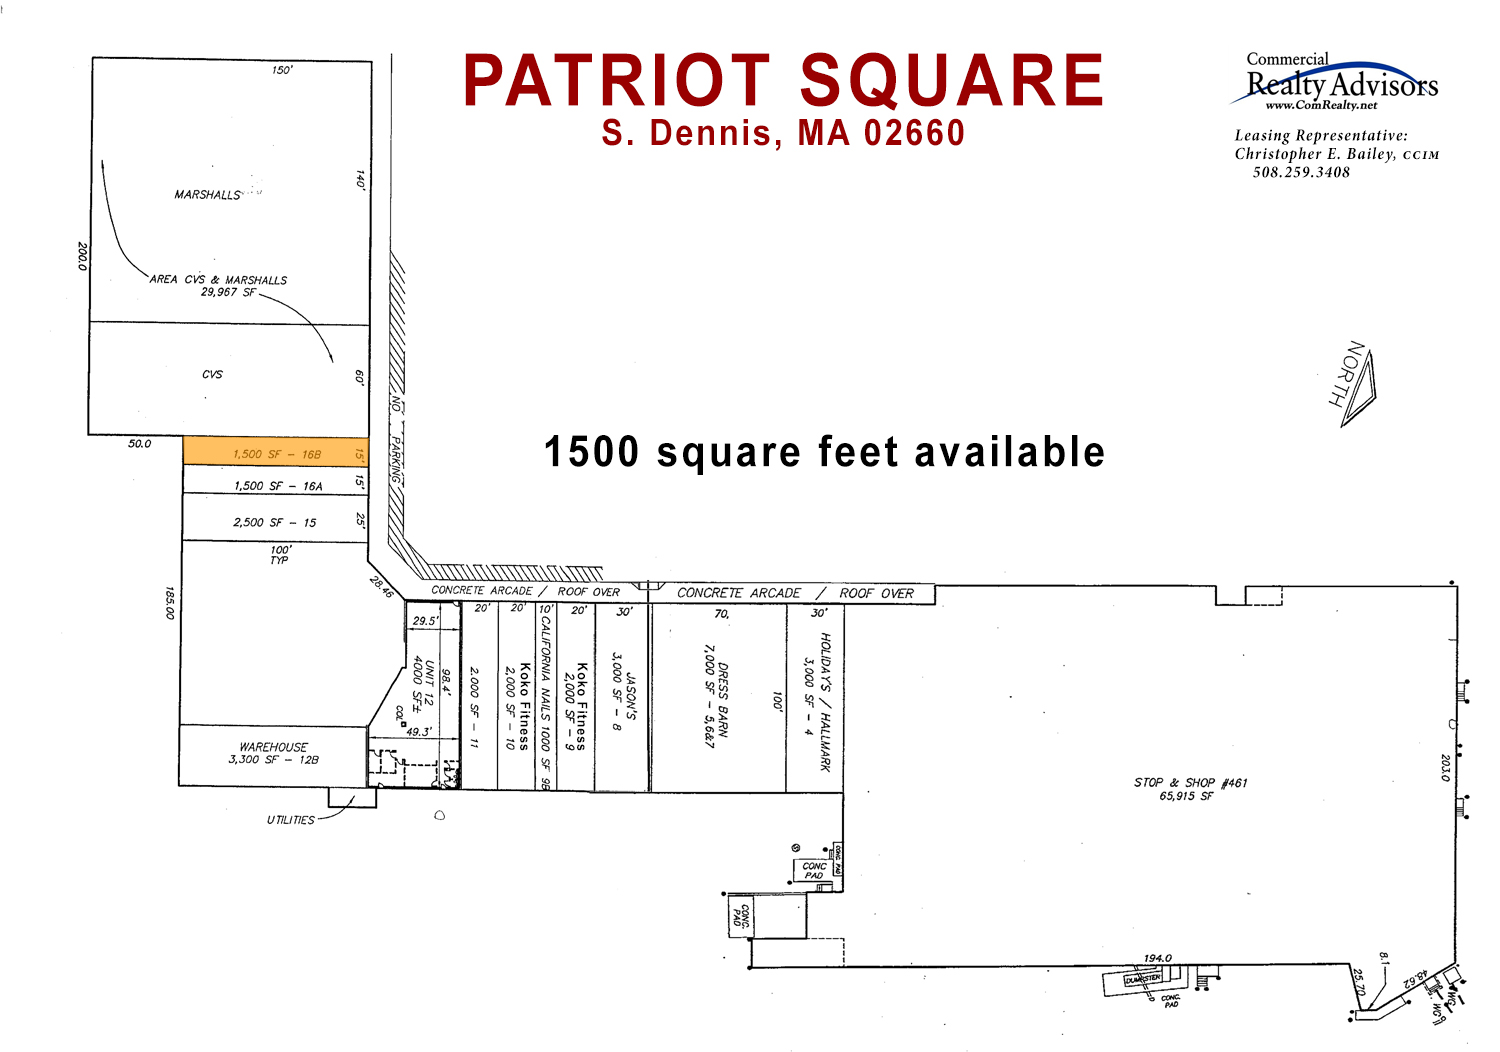 516 Route 134, South Dennis, MA: 1,500+/- Sq. Ft. Retail Shopping Center Space for Lease